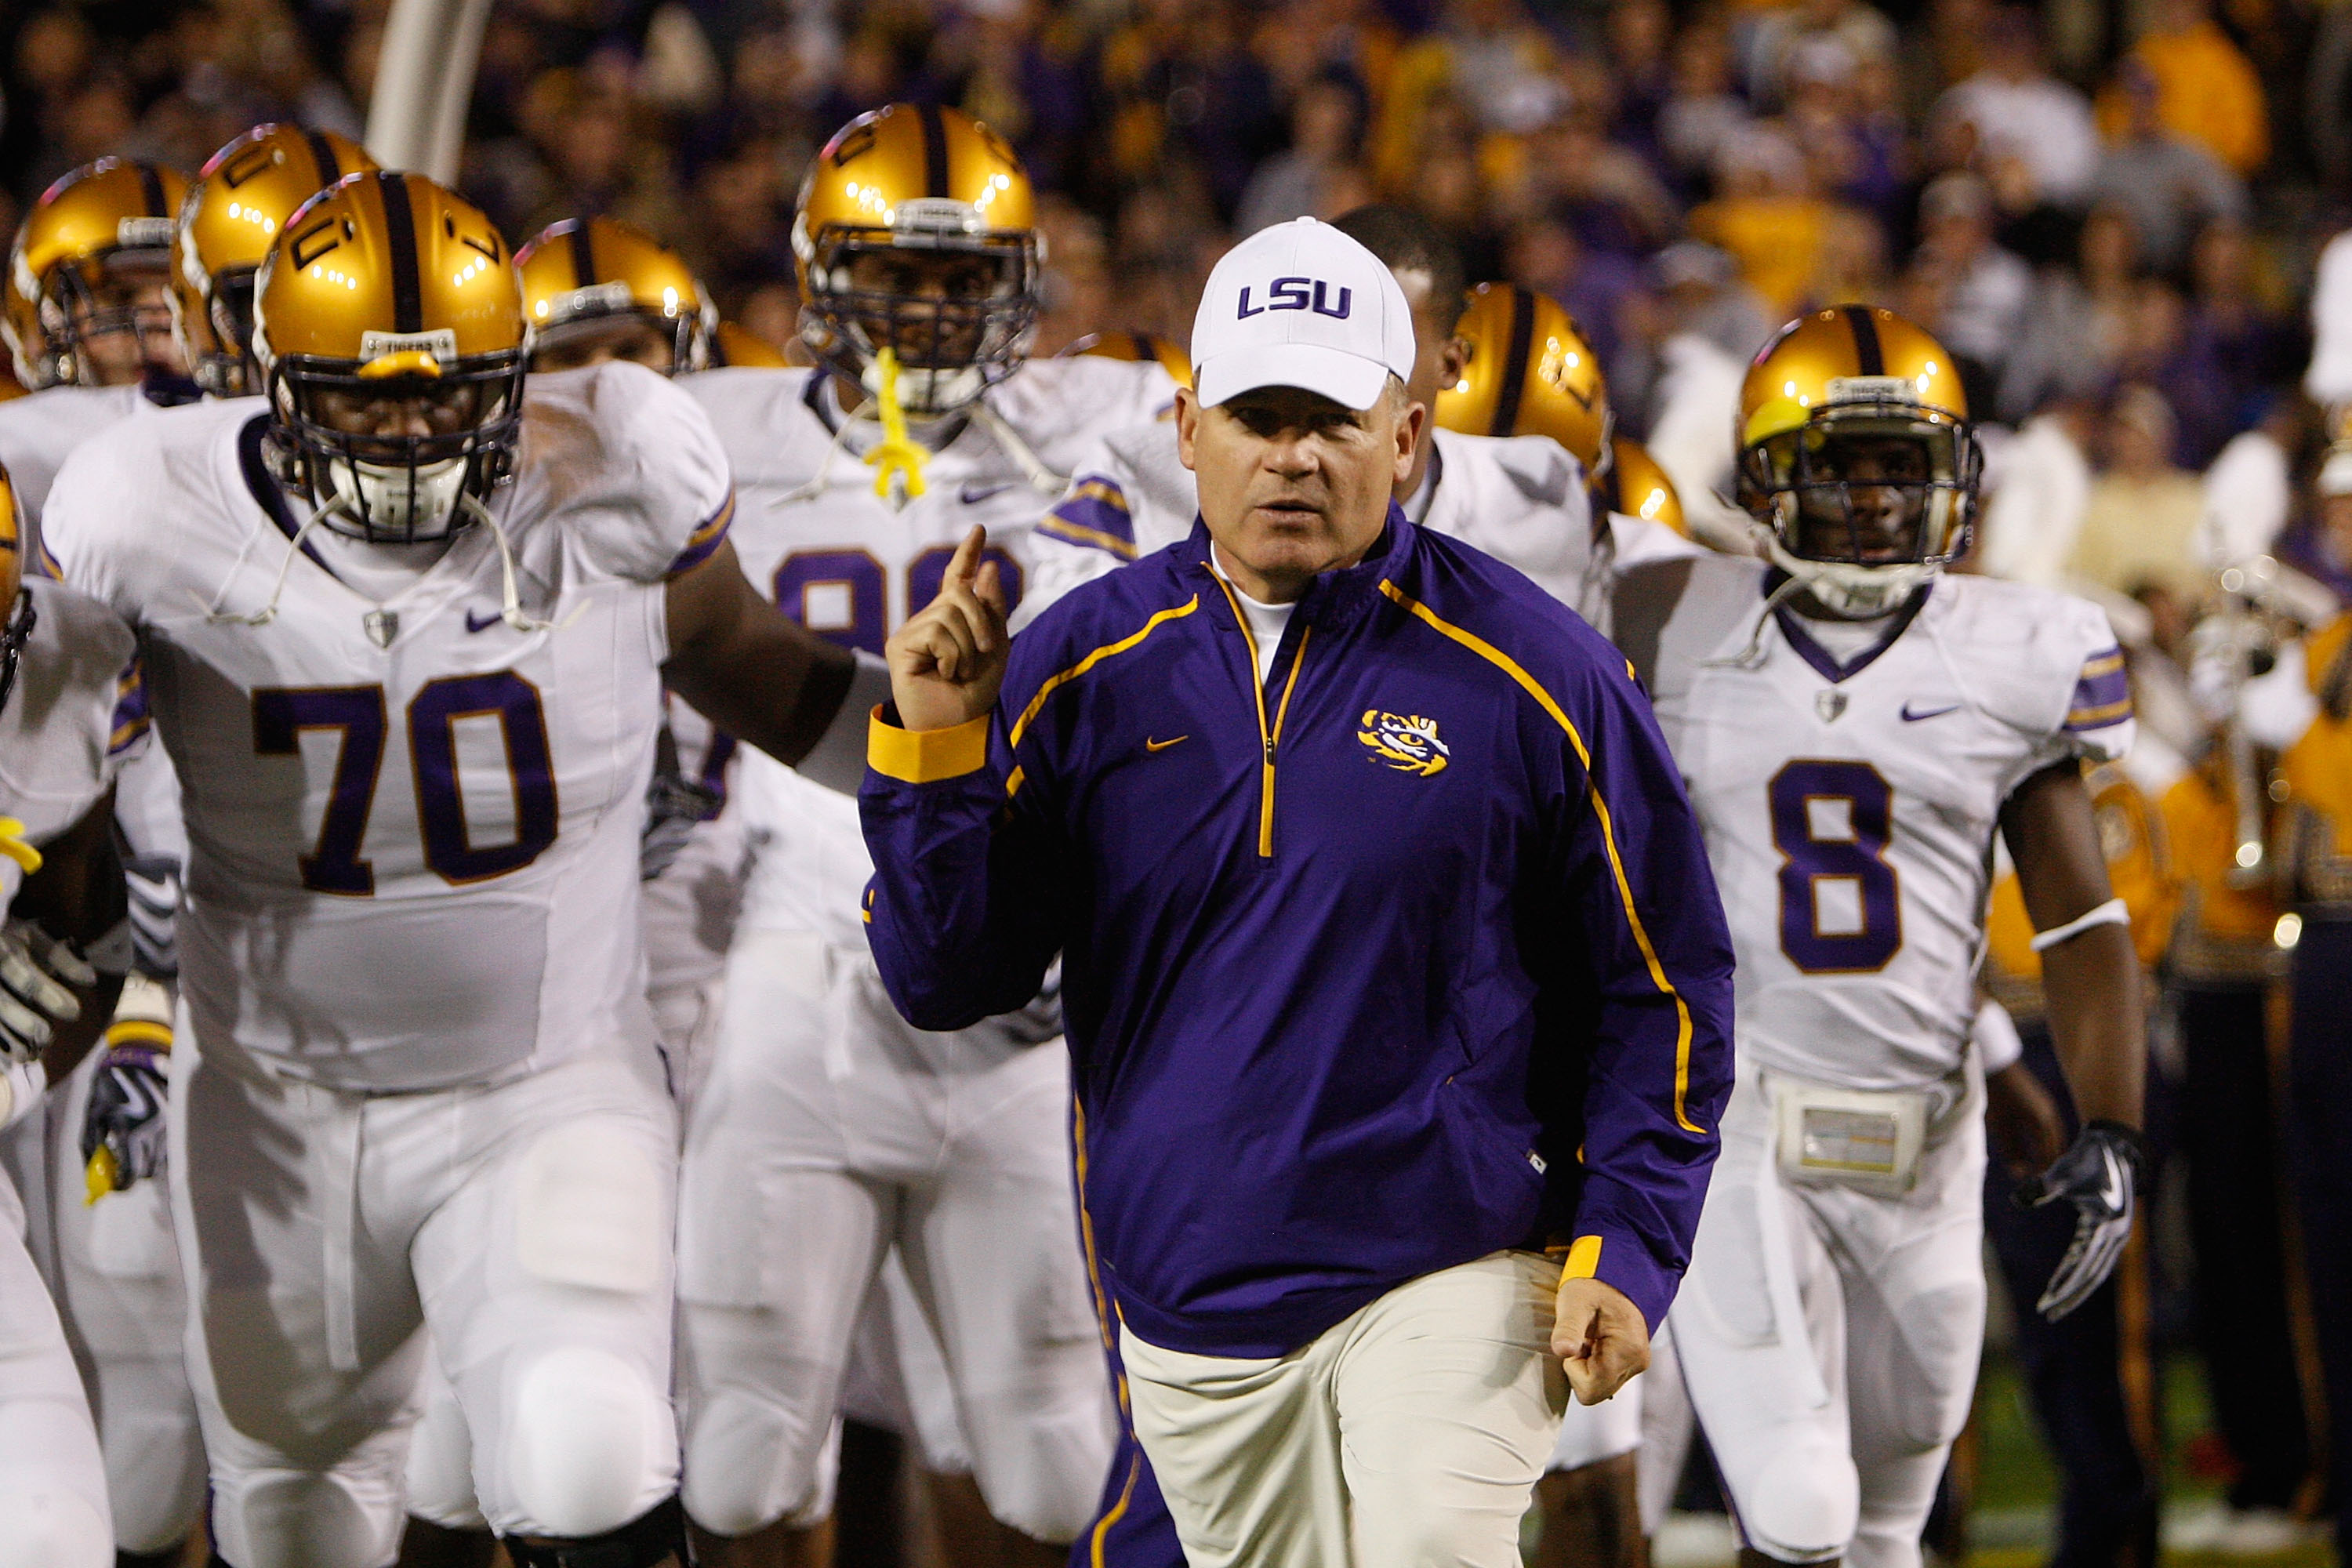 BATON ROUGE, LA - NOVEMBER 28:  Head coach Les Miles of the LSU Tigers takes the field before the game against the Arkansa Razorbacks at Tiger Stadium on November 28, 2009 in Baton Rouge, Louisiana.  The Tigers defeated the Razorbacks 33-30 in overtime.